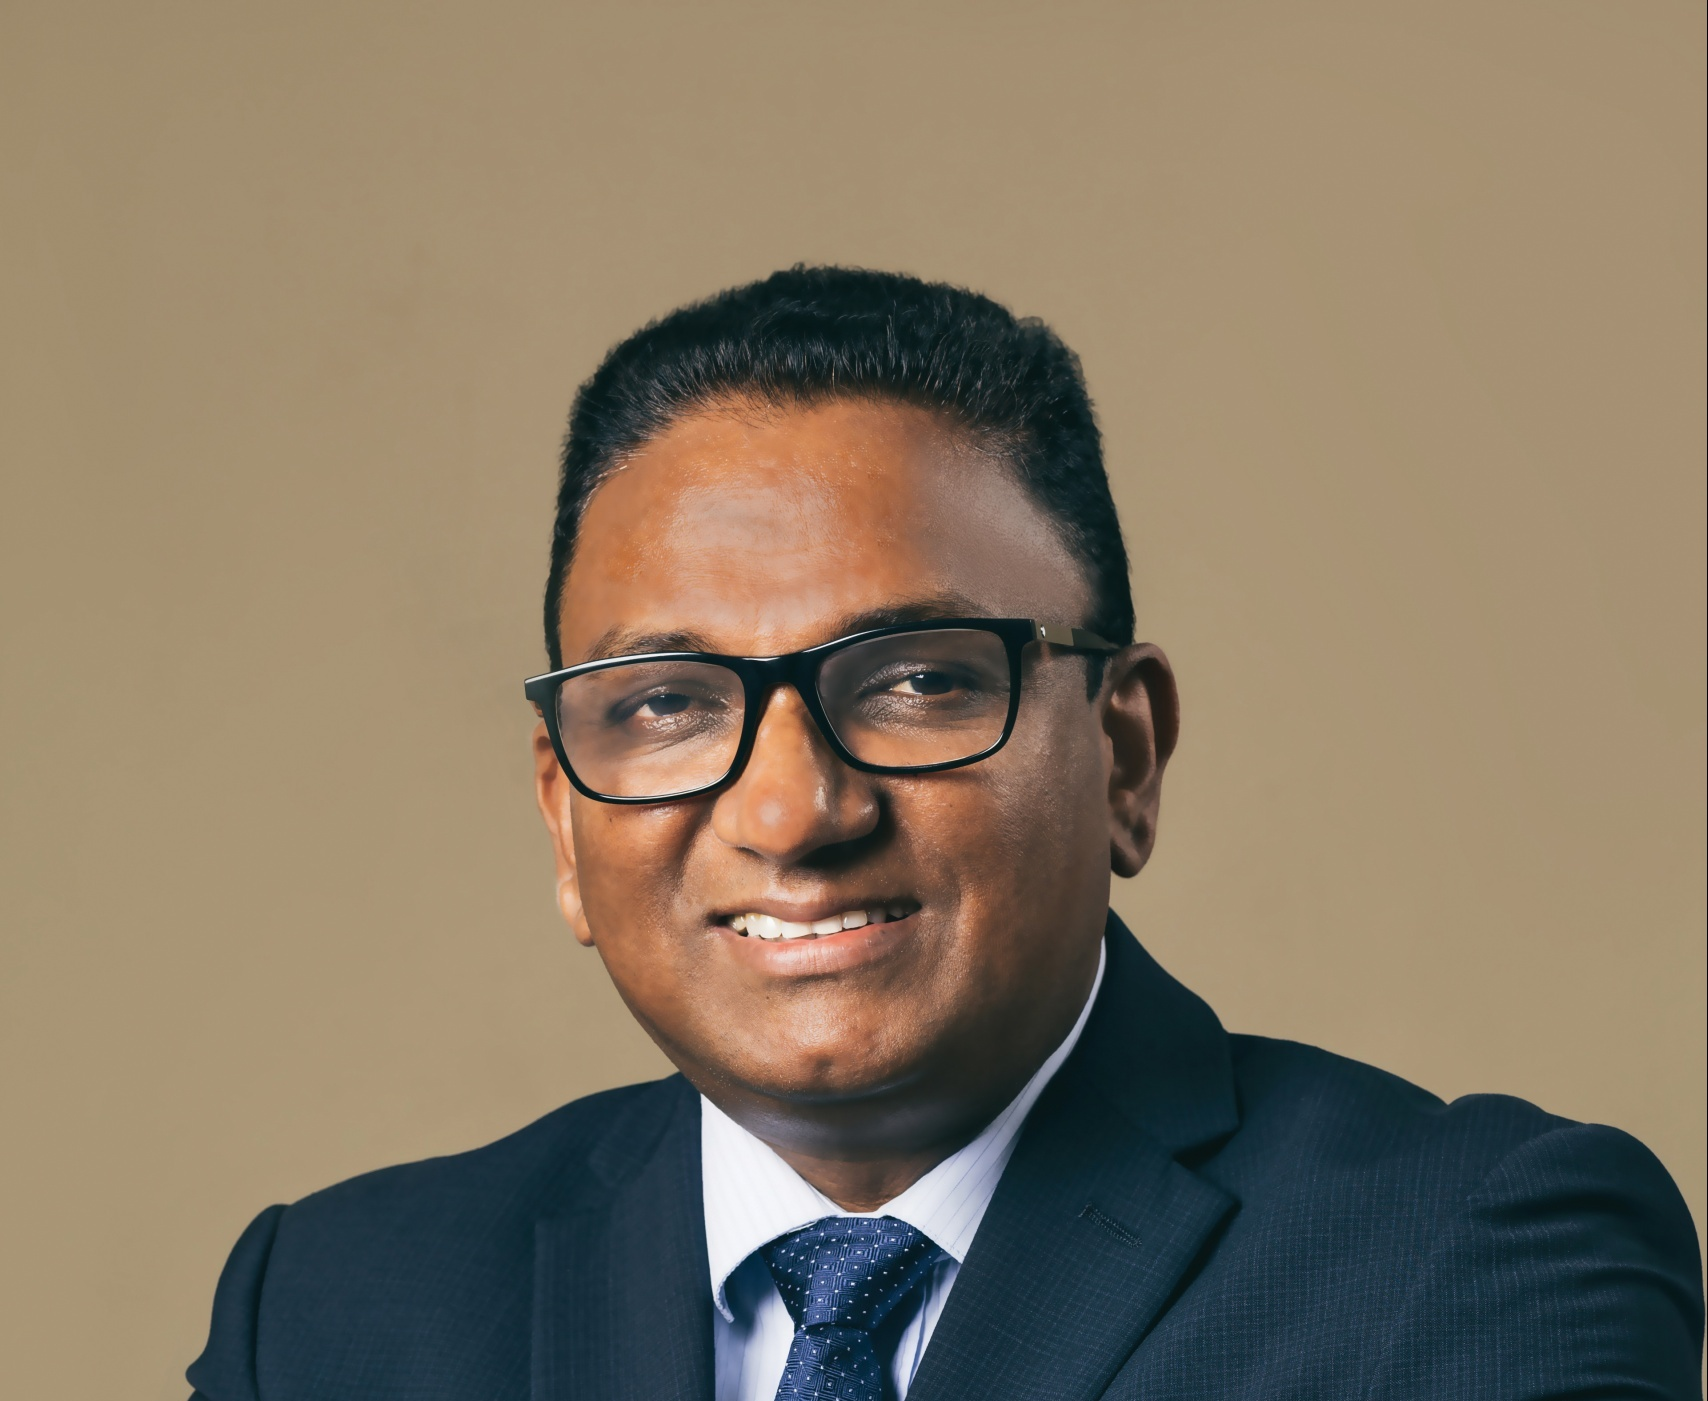 """""""We will connect 2 Million households by 2023"""", Kiththi Perera, CEO of Sri Lanka Telecom PLC"""